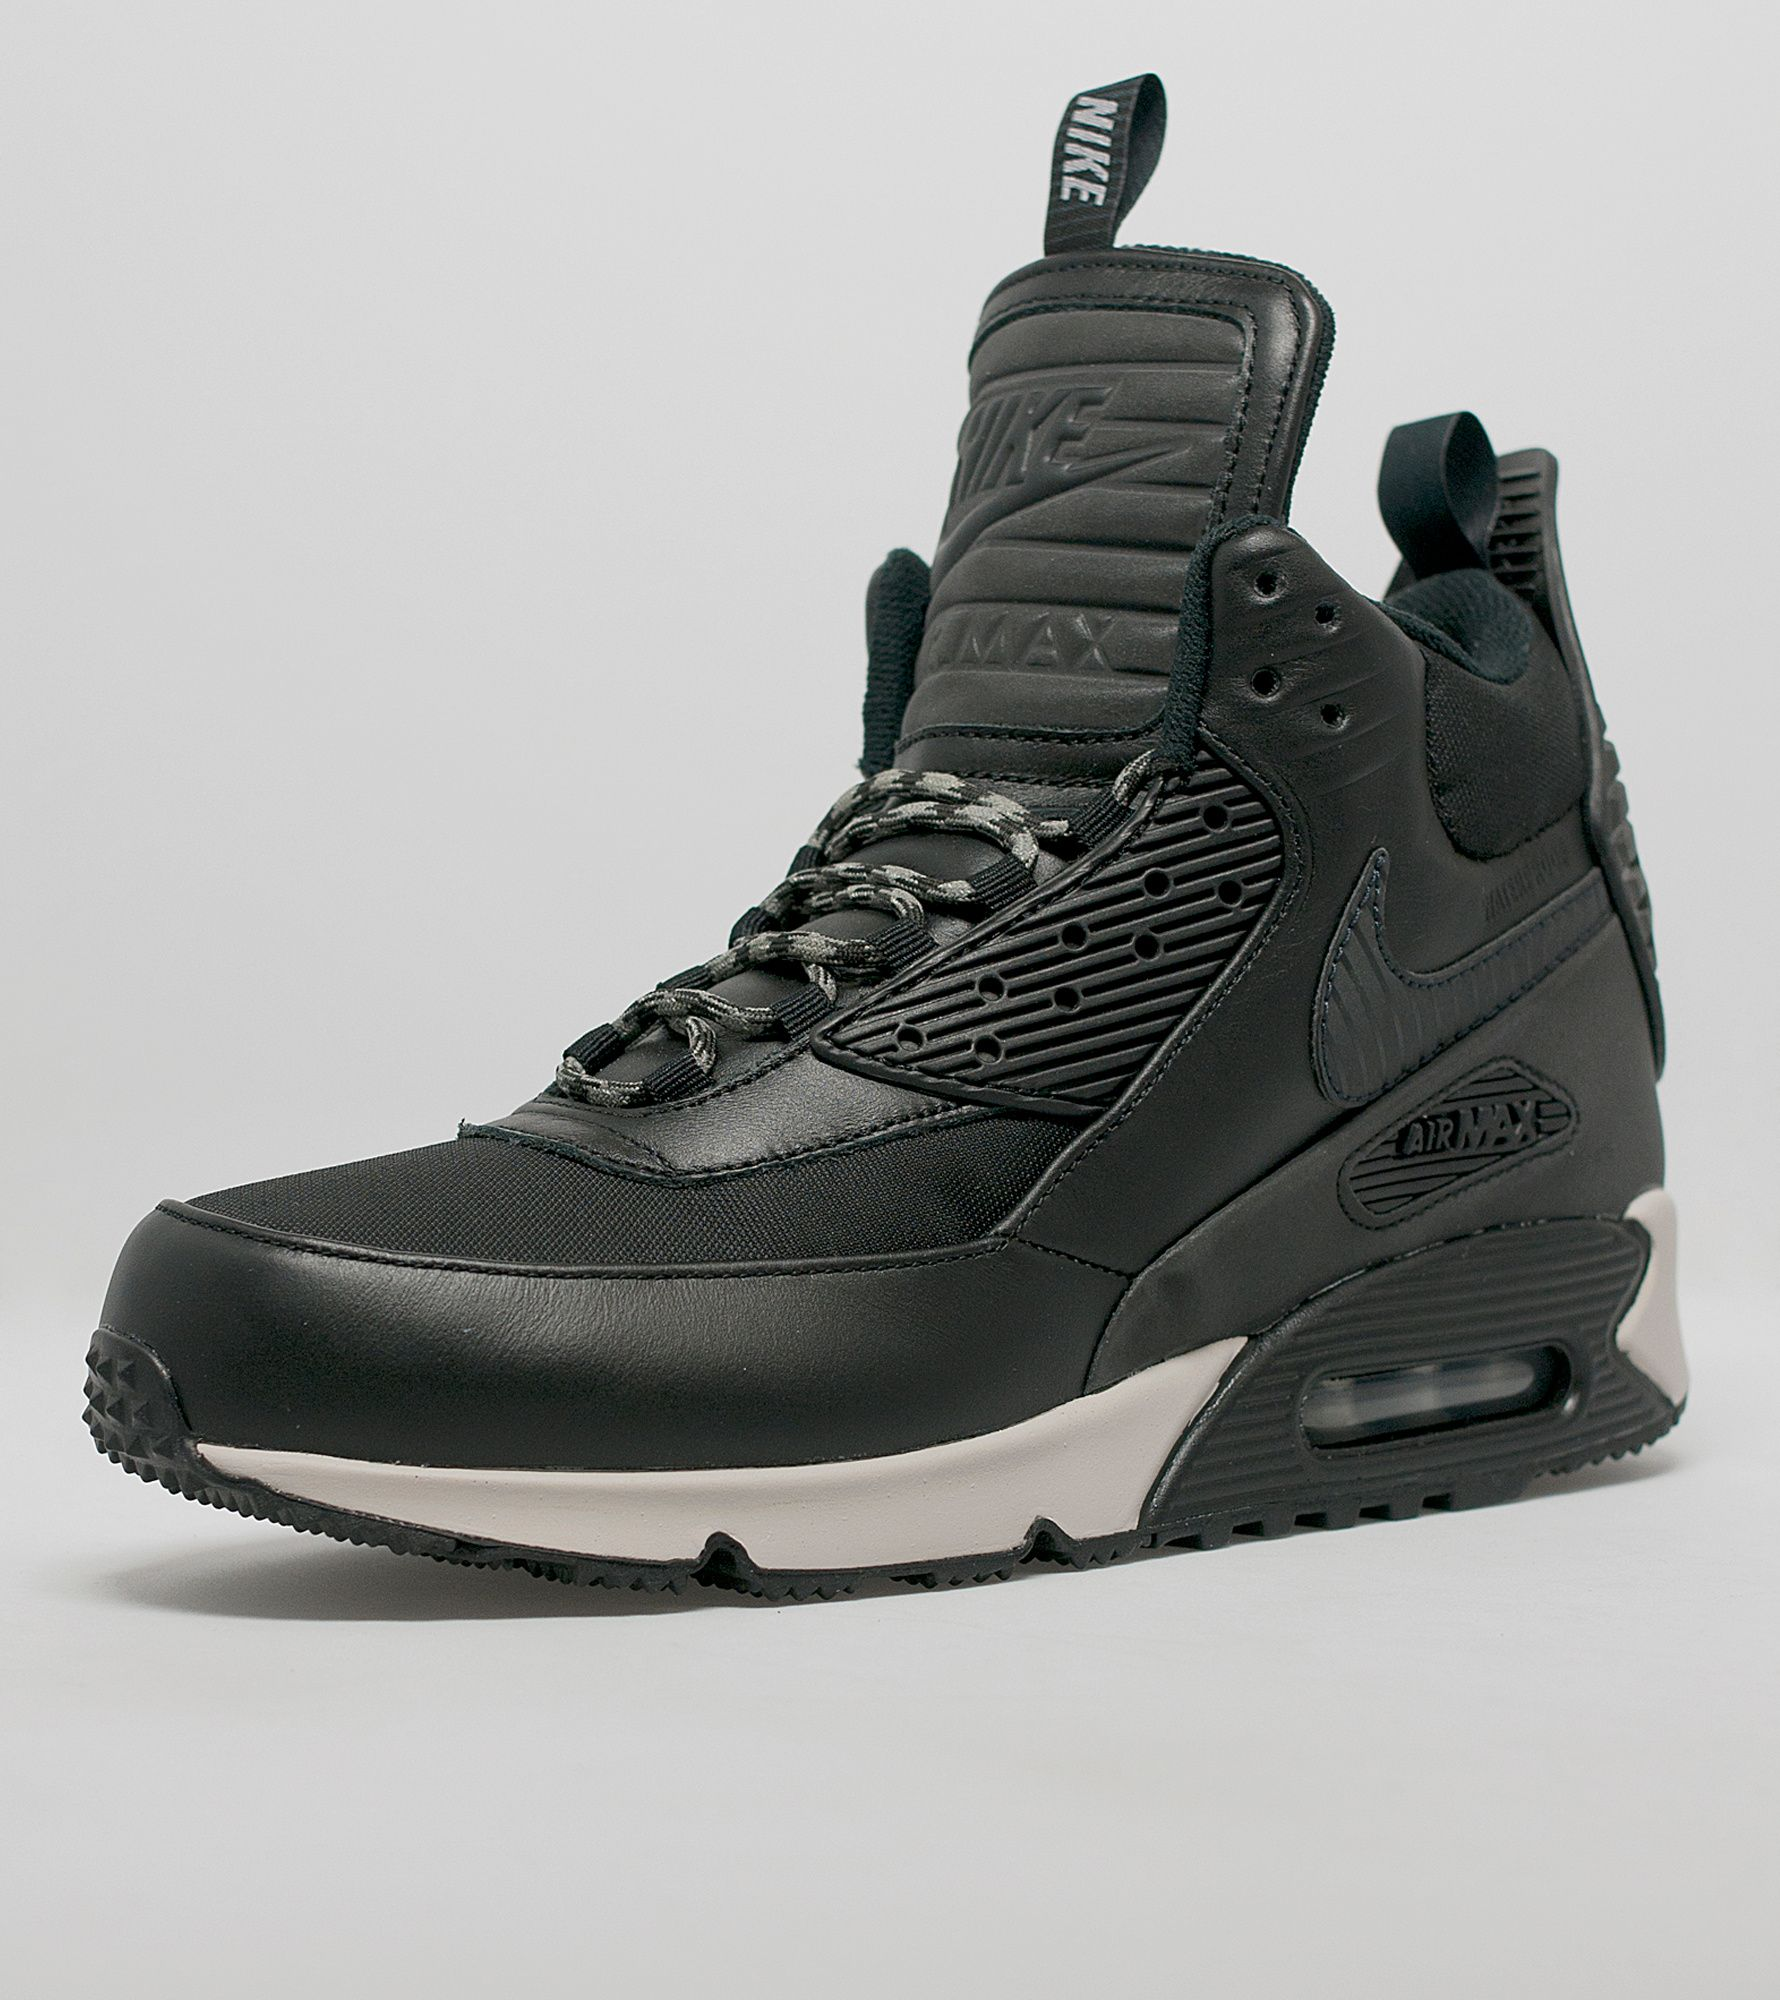 nike air max 90 sneakerboot winter size. Black Bedroom Furniture Sets. Home Design Ideas